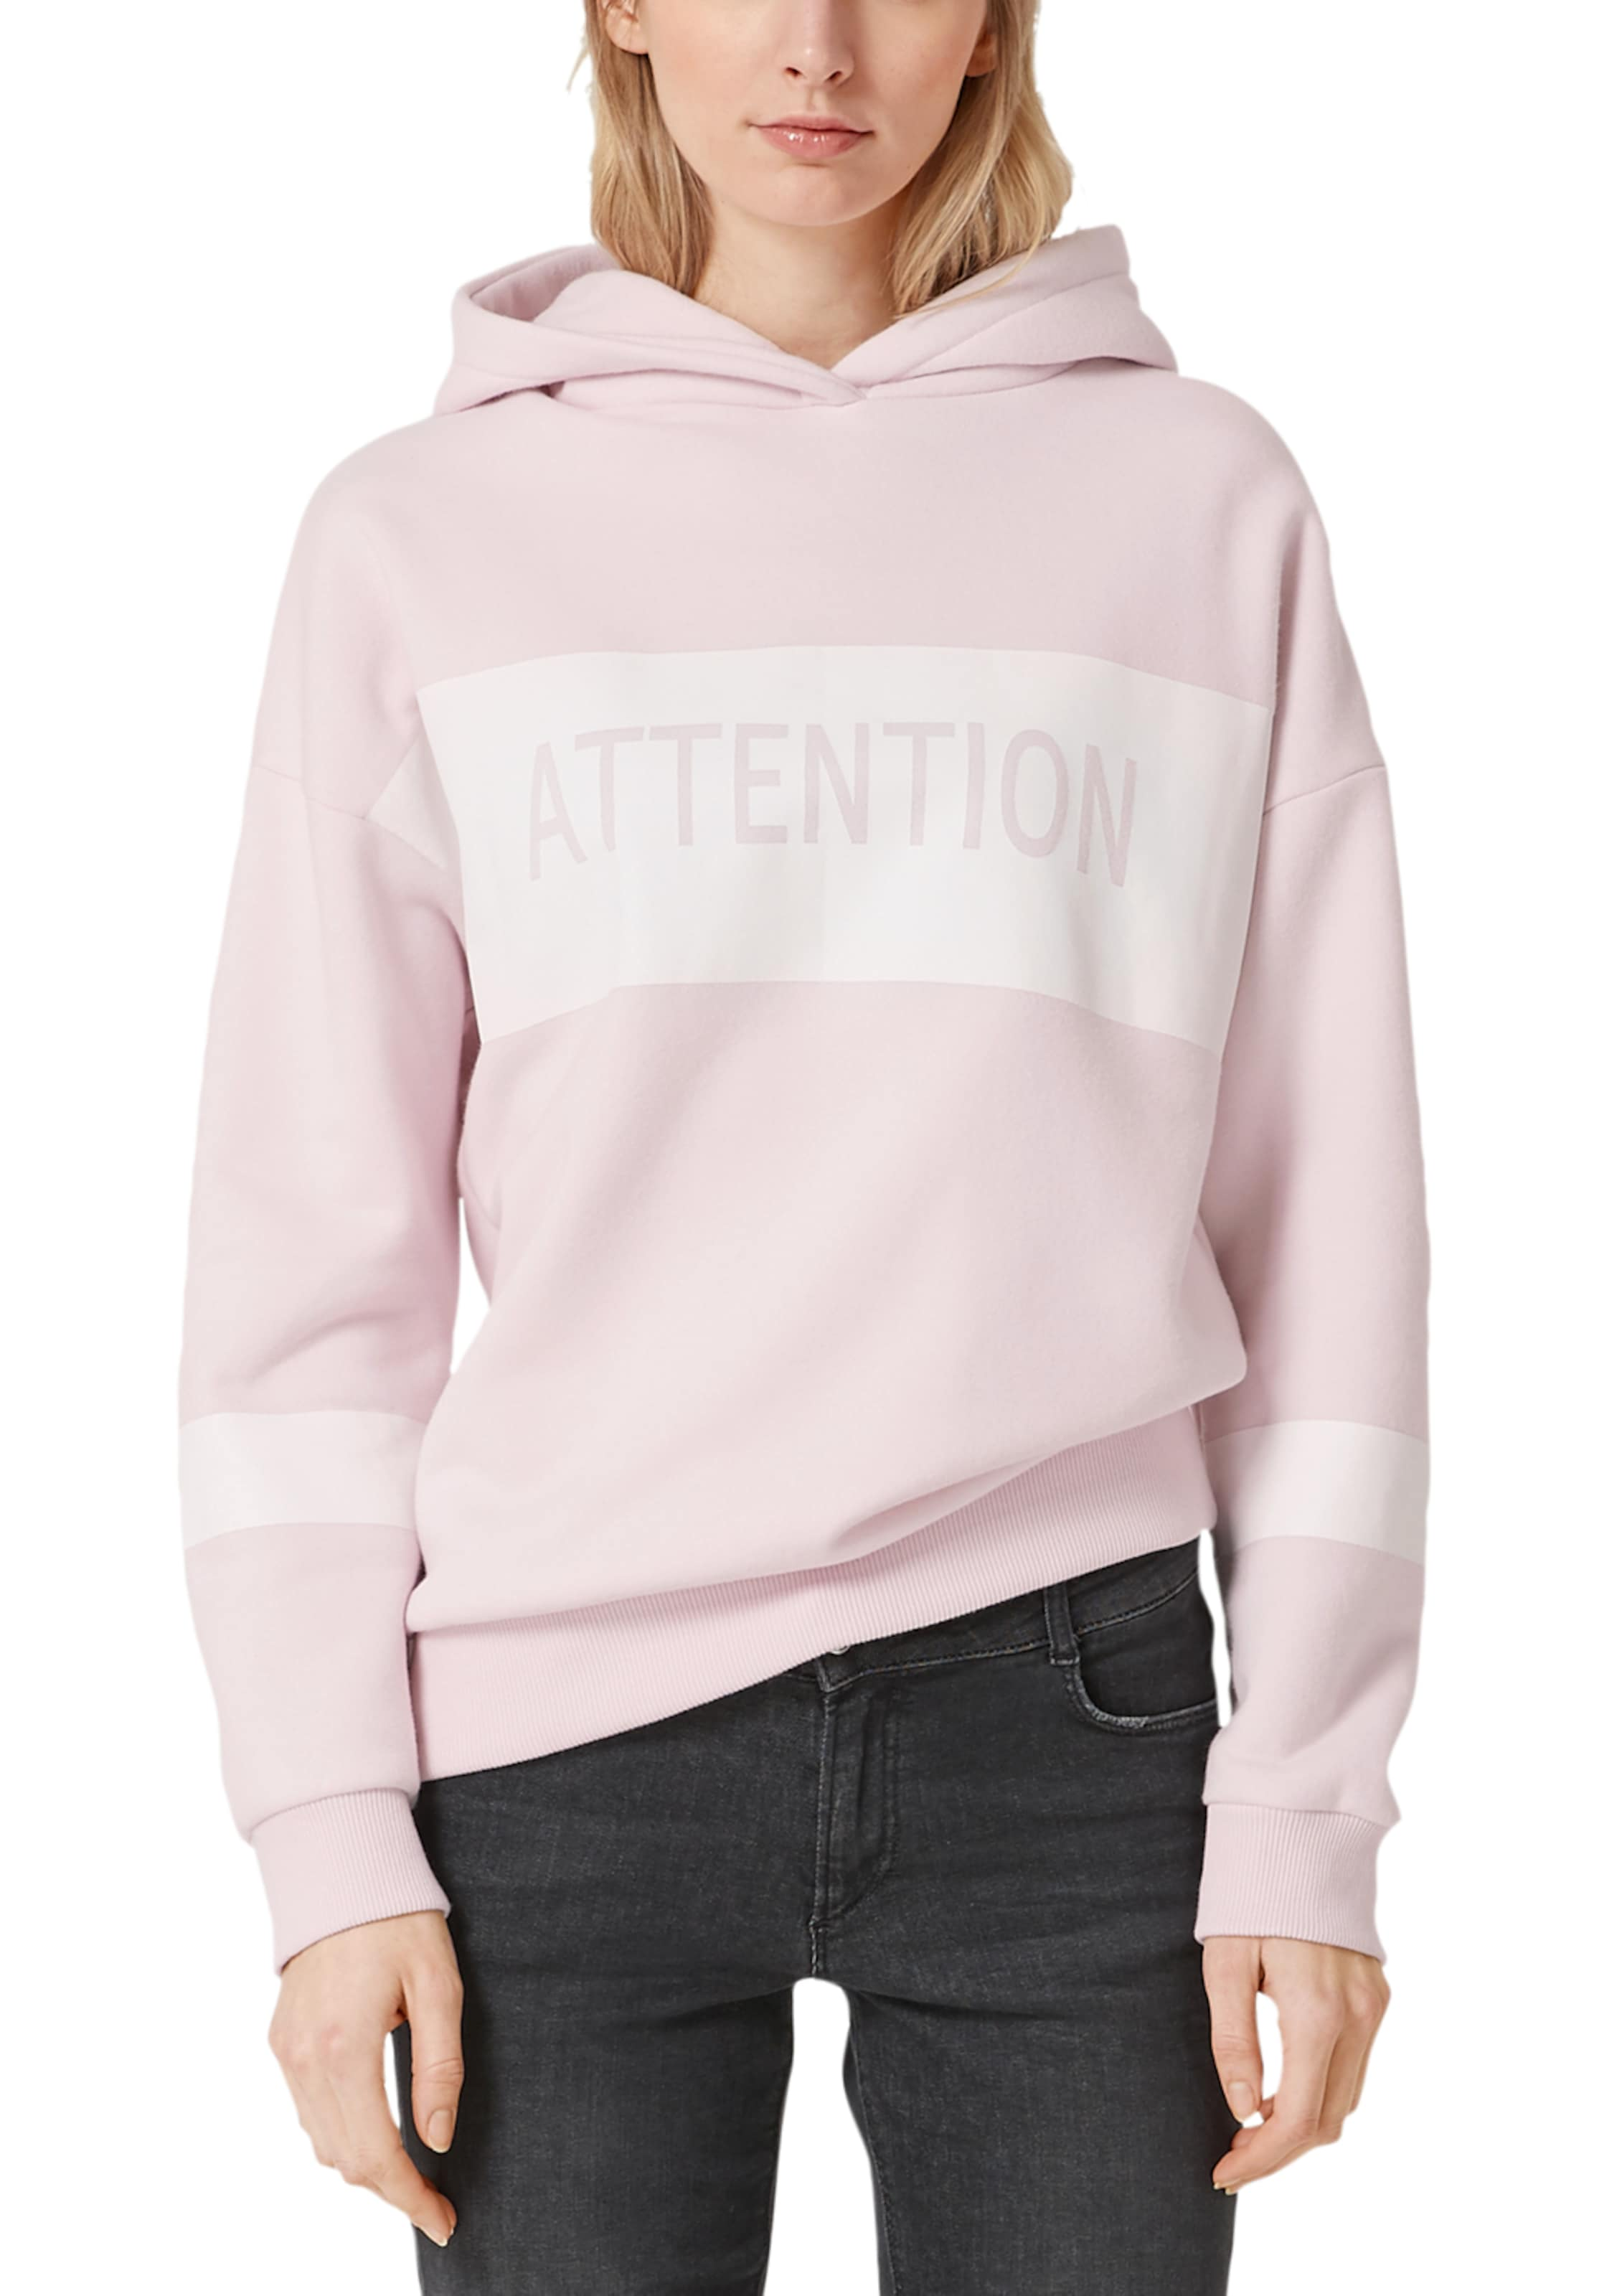 By Sweat hoodie In s Q Designed Rosa 8P0wkXnO